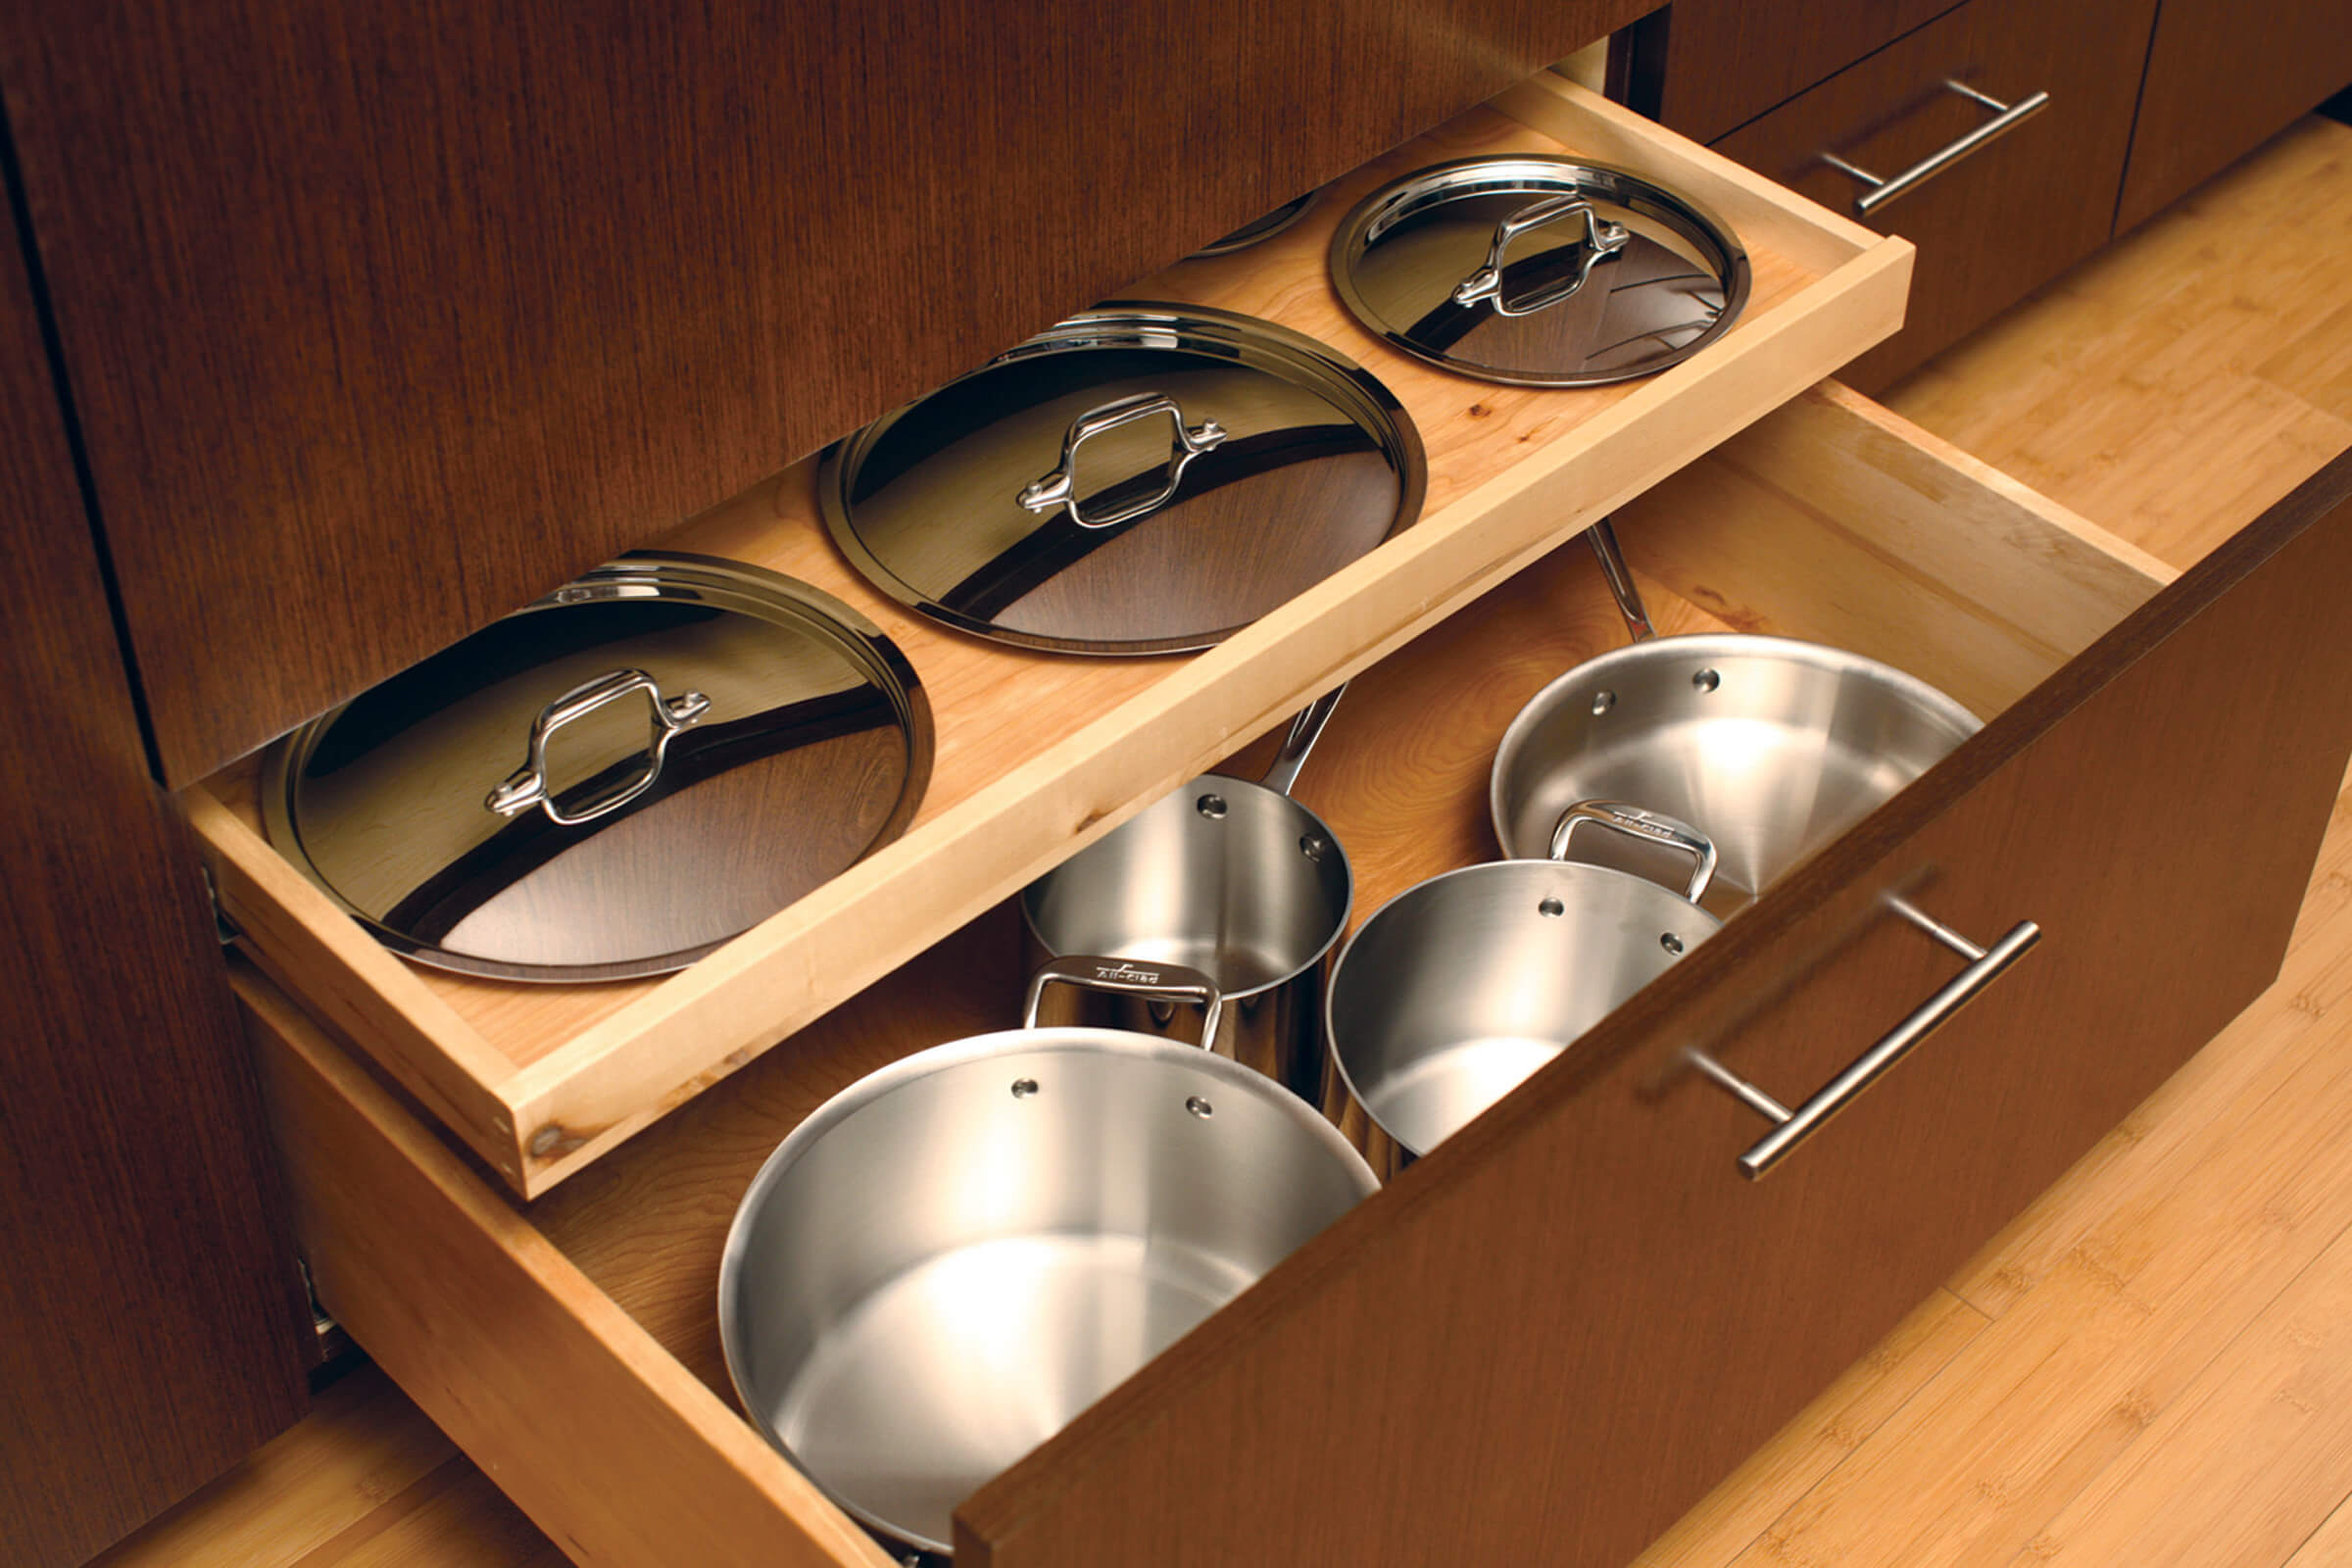 A Shallow Roll-Out Above Drawer neatly stores the lids for the pots and pans that are stored in the deep drawer below.